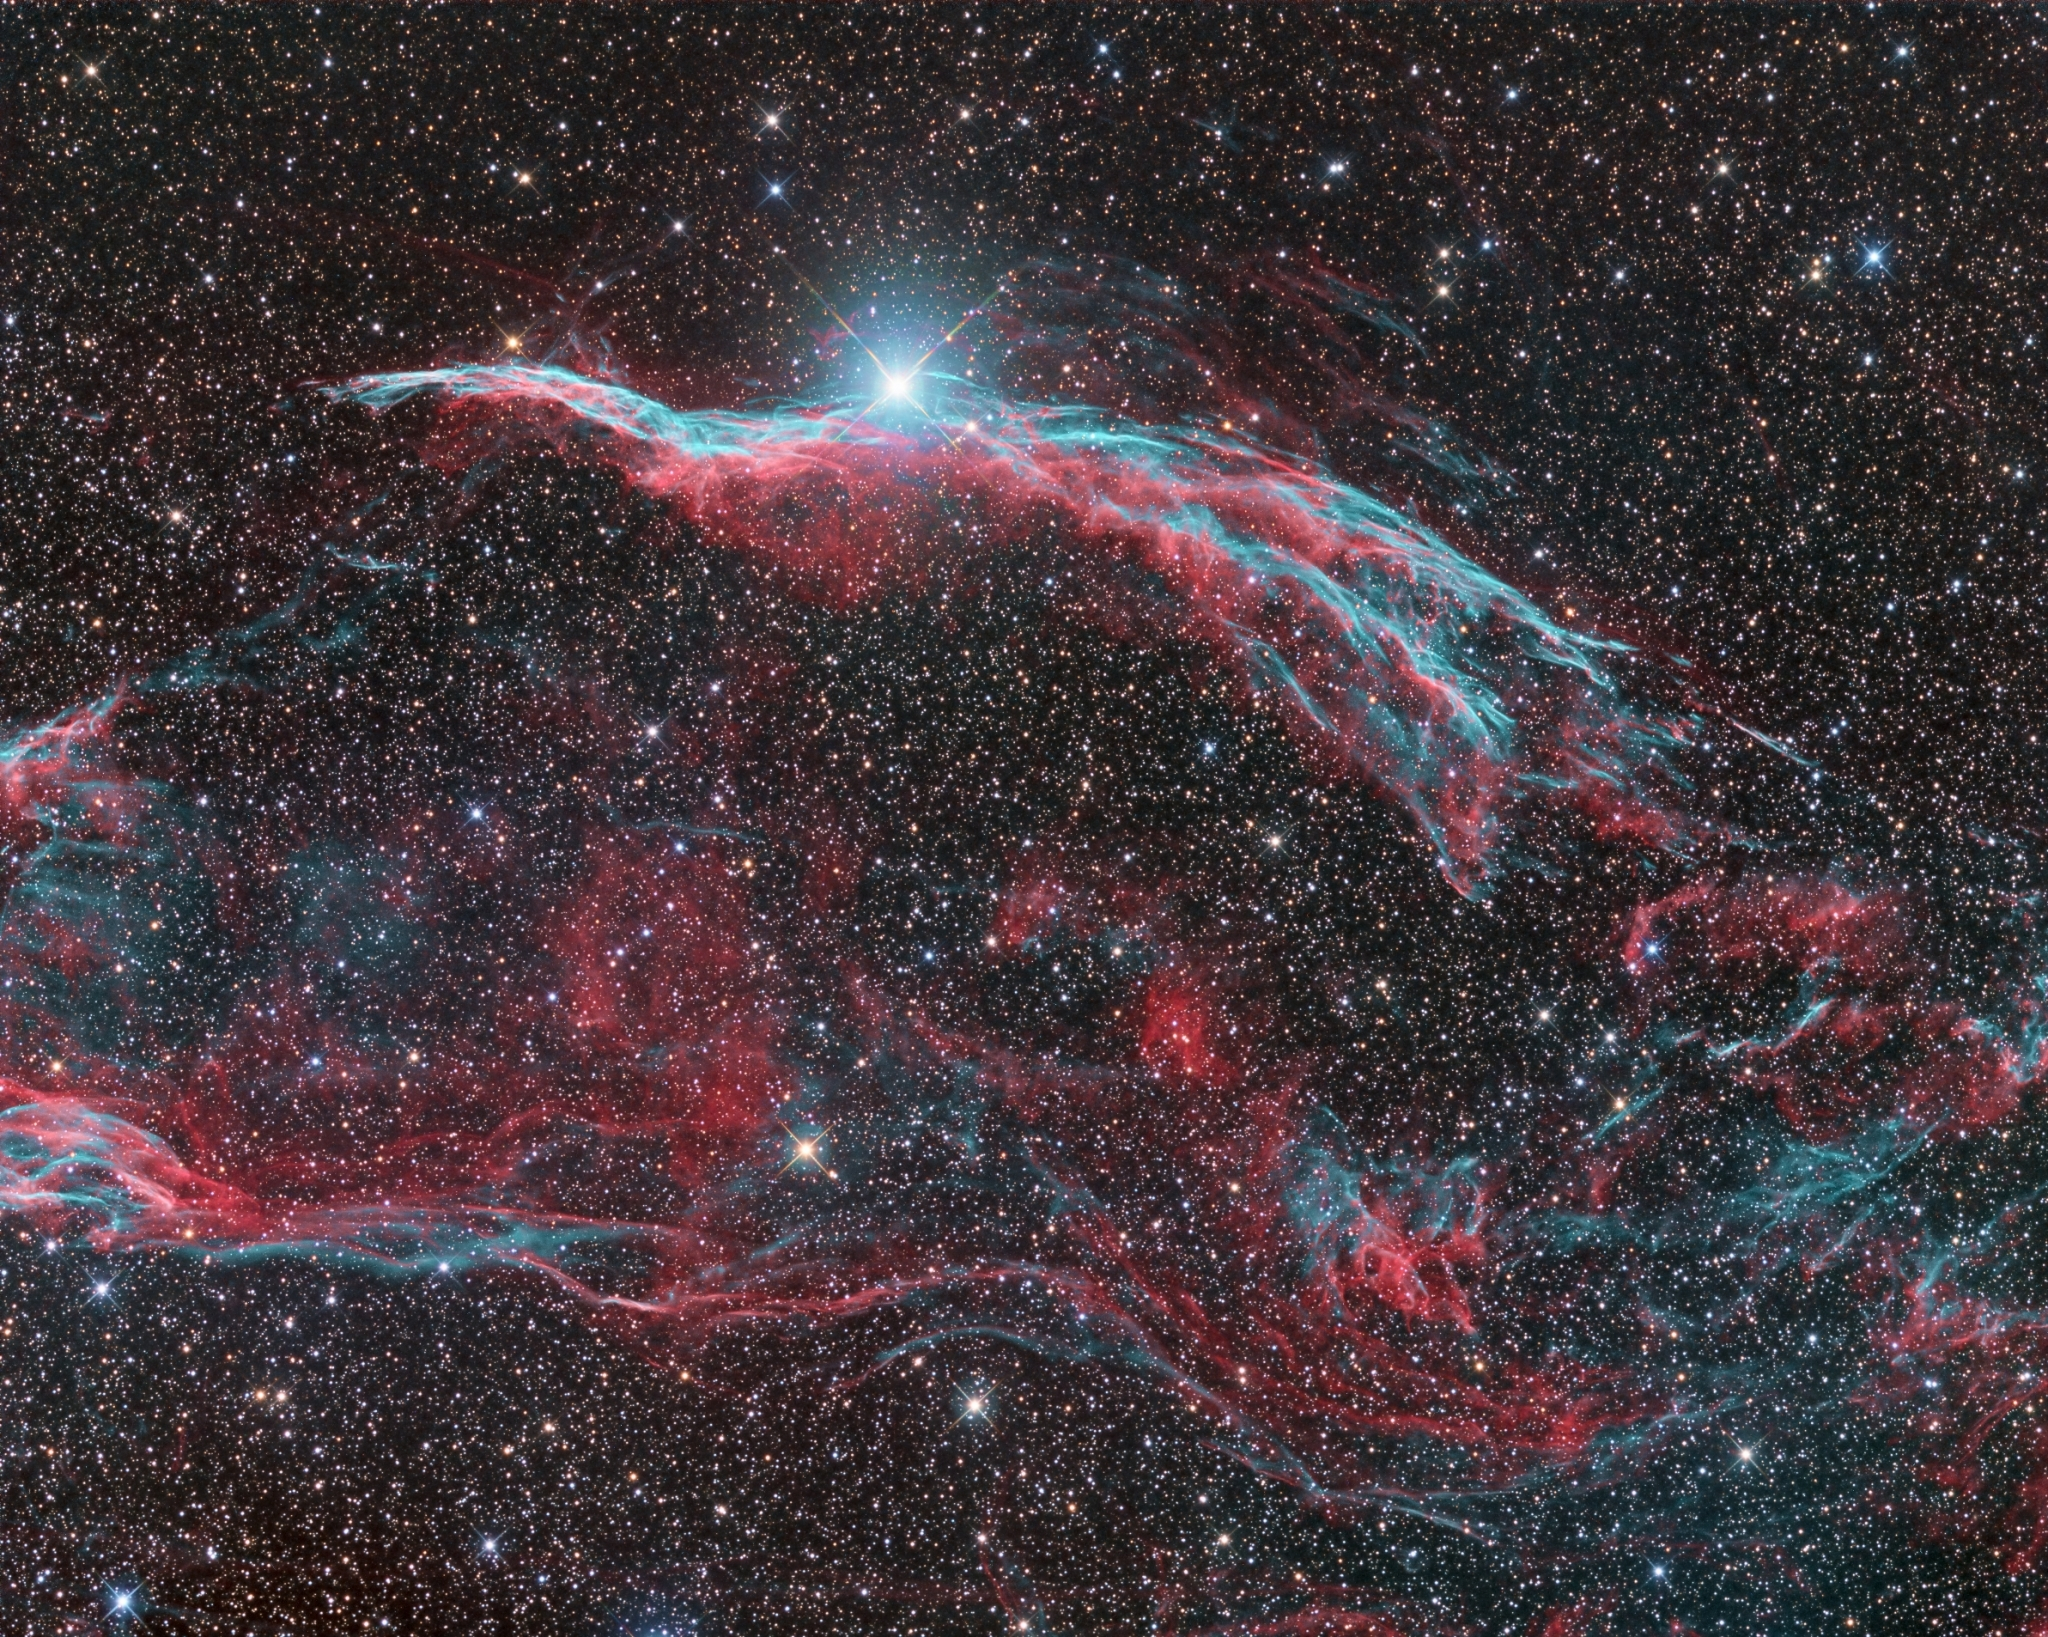 Full Moon Dec 2017 >> NGC6960, the Western Veil Nebula - Astrodoc: Astrophotography by Ron Brecher